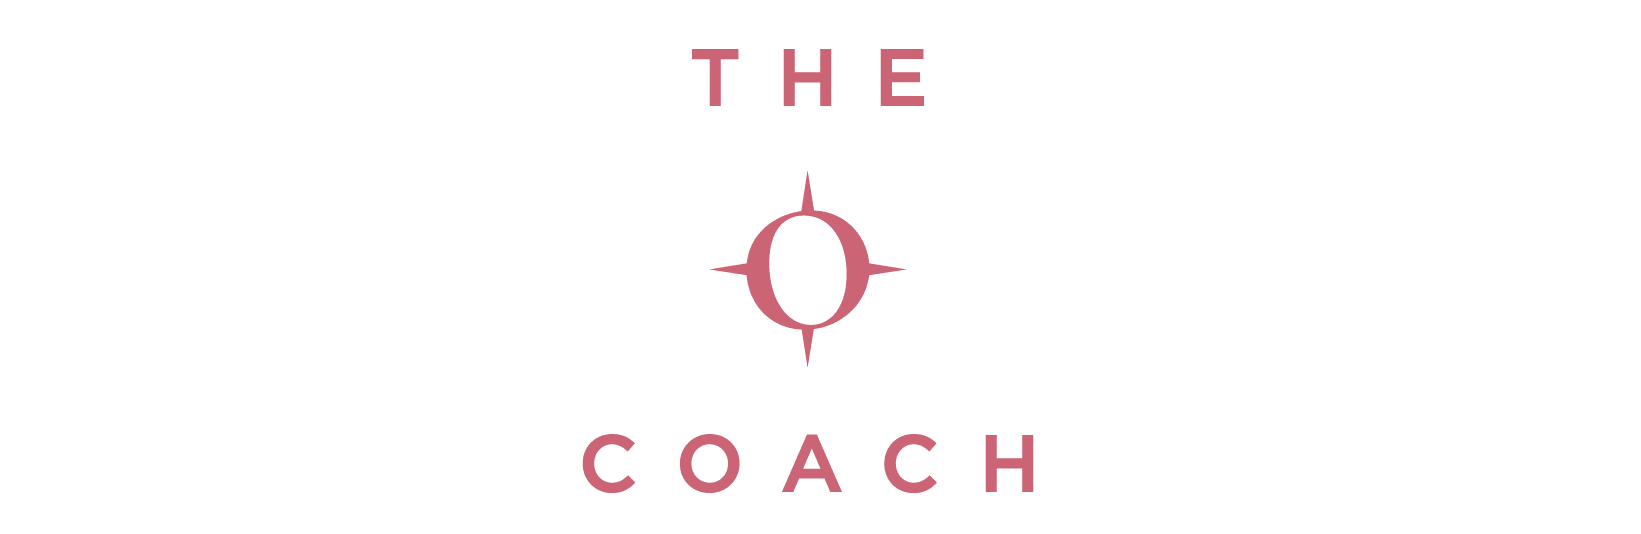 astrology coaching logo